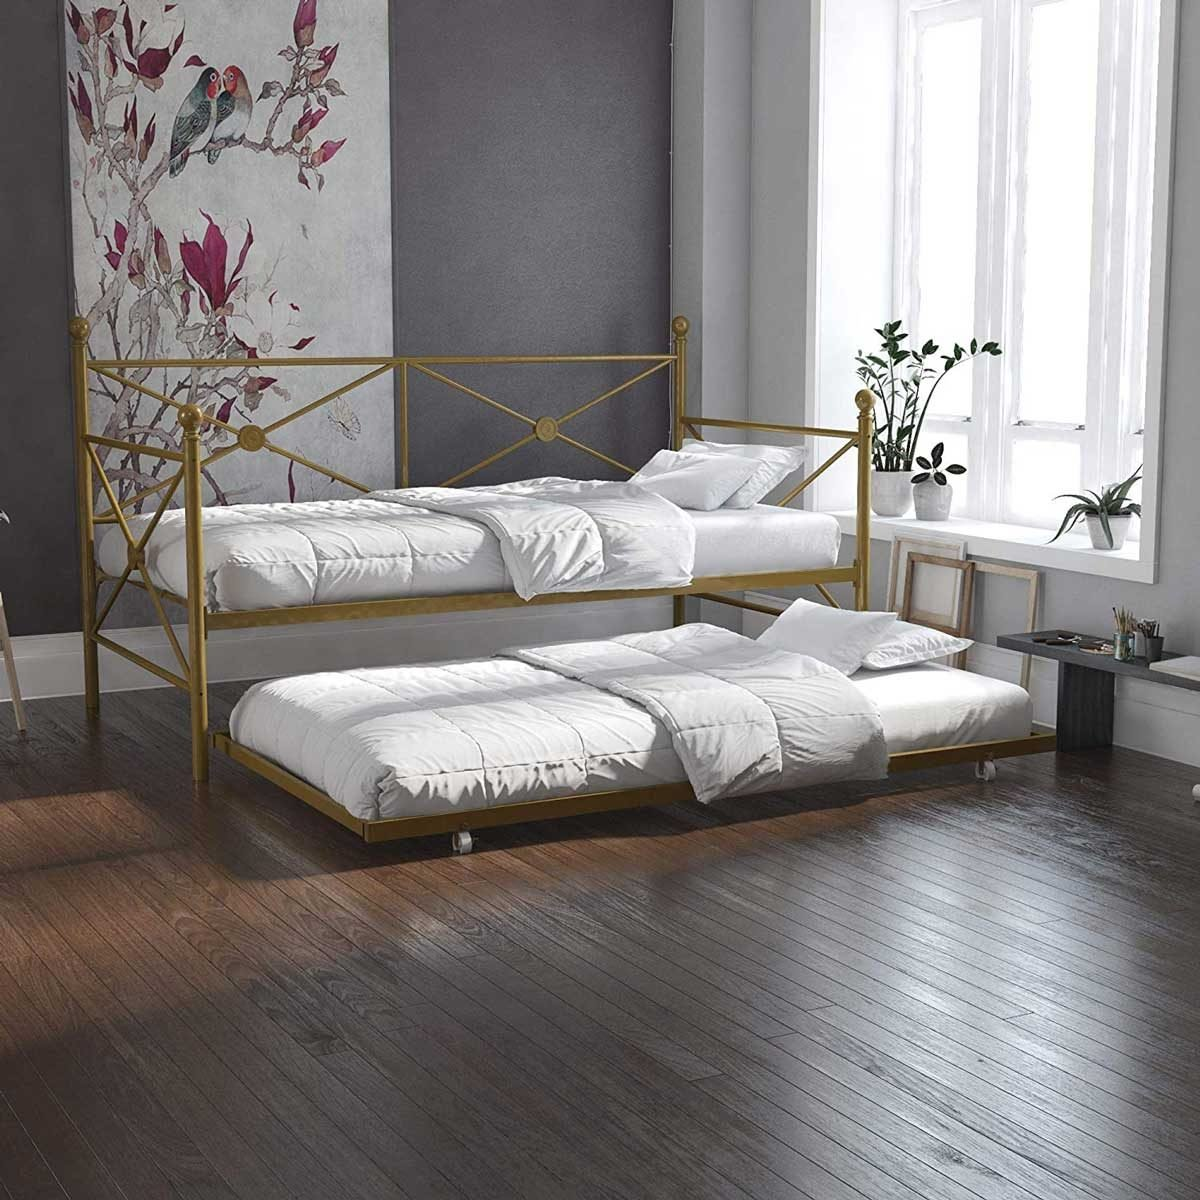 11 Best Space-Saving Beds